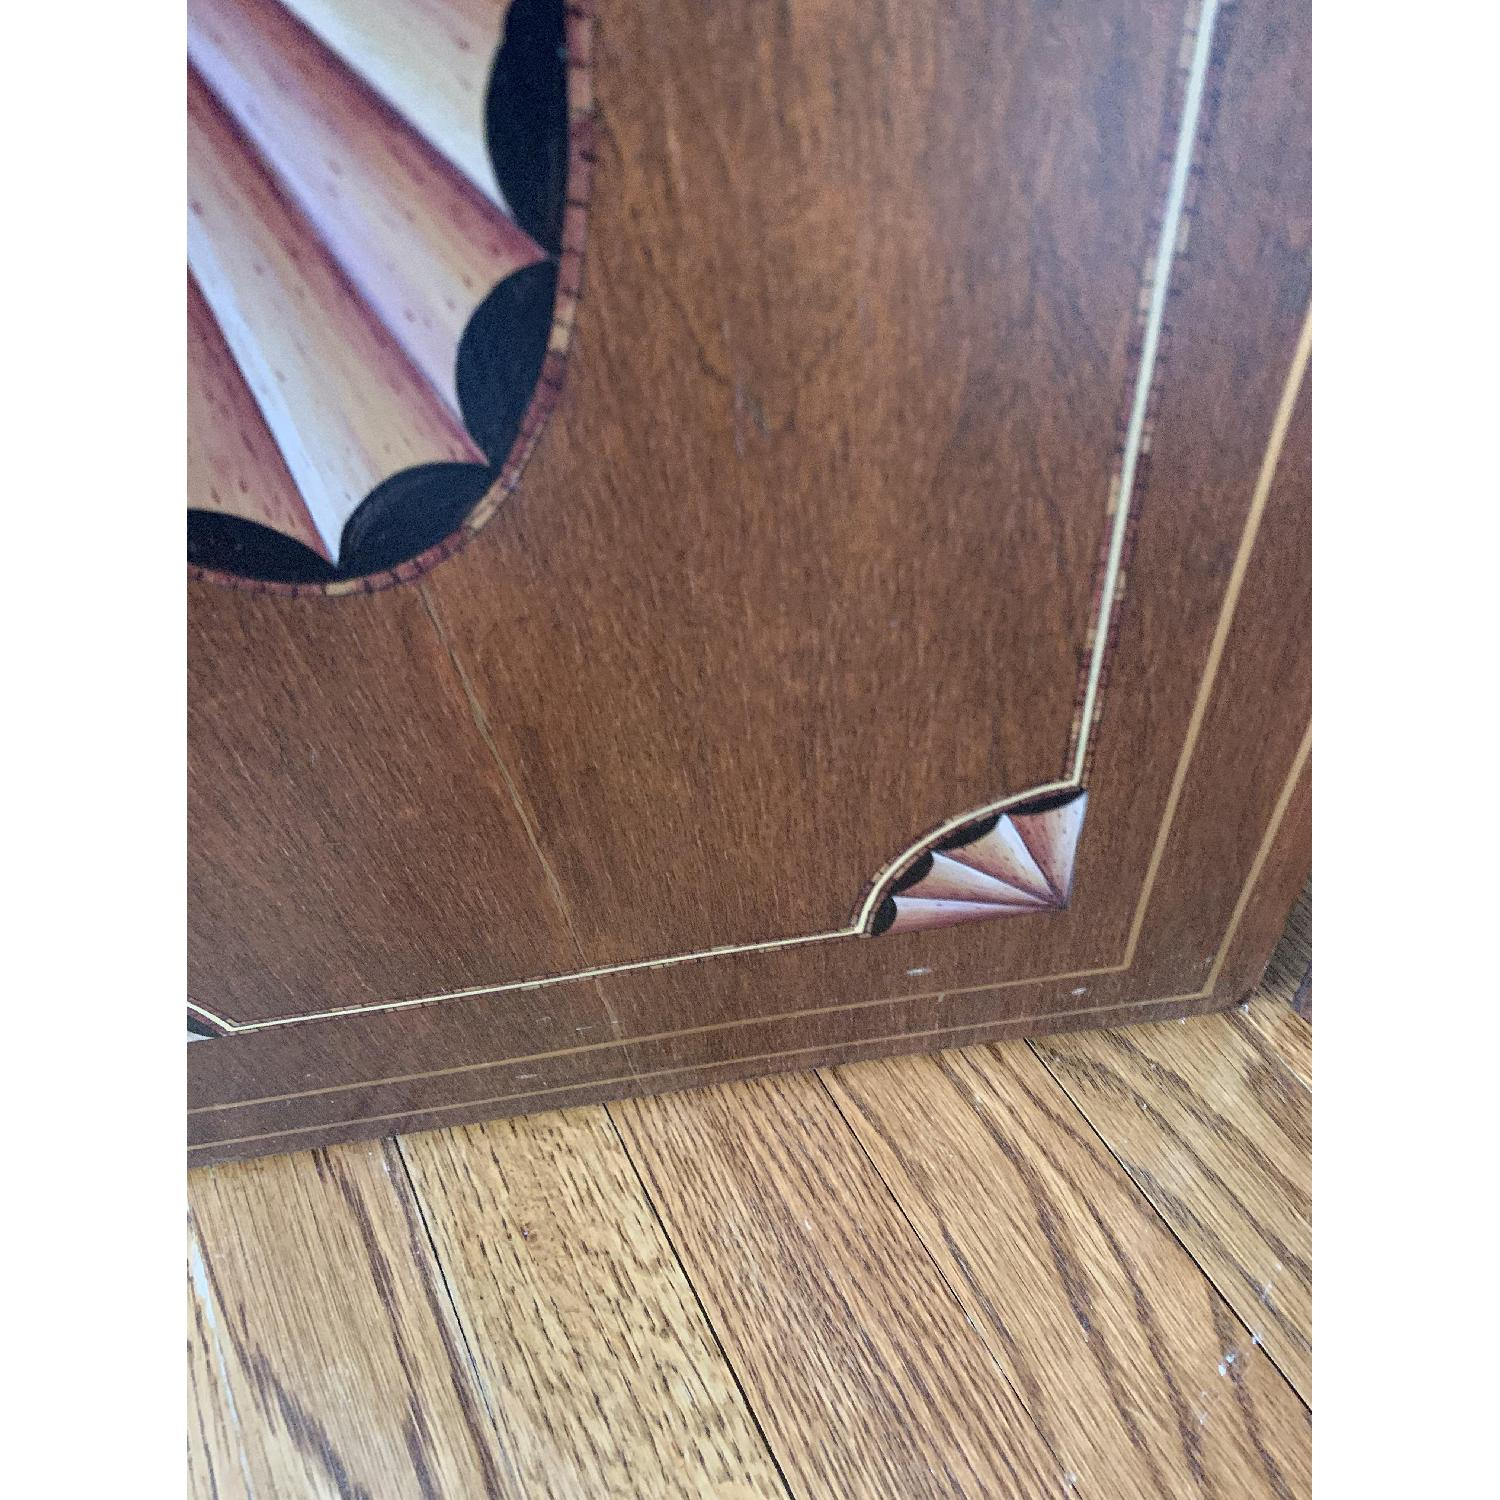 Maitland-Smith Tooled Leather Book Room Divider - image-4